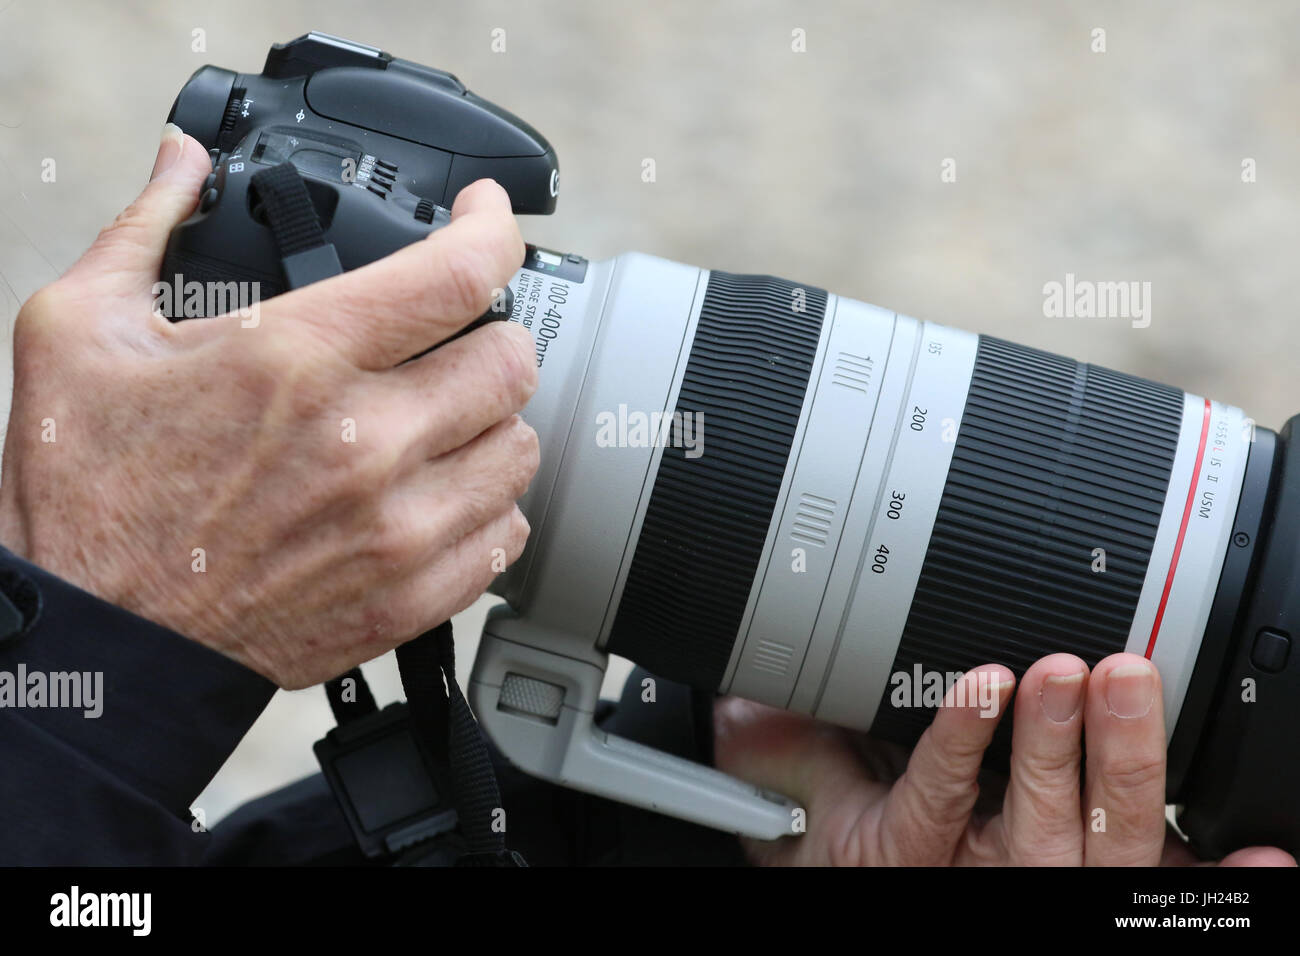 Photographer and his digital camera. - Stock Image